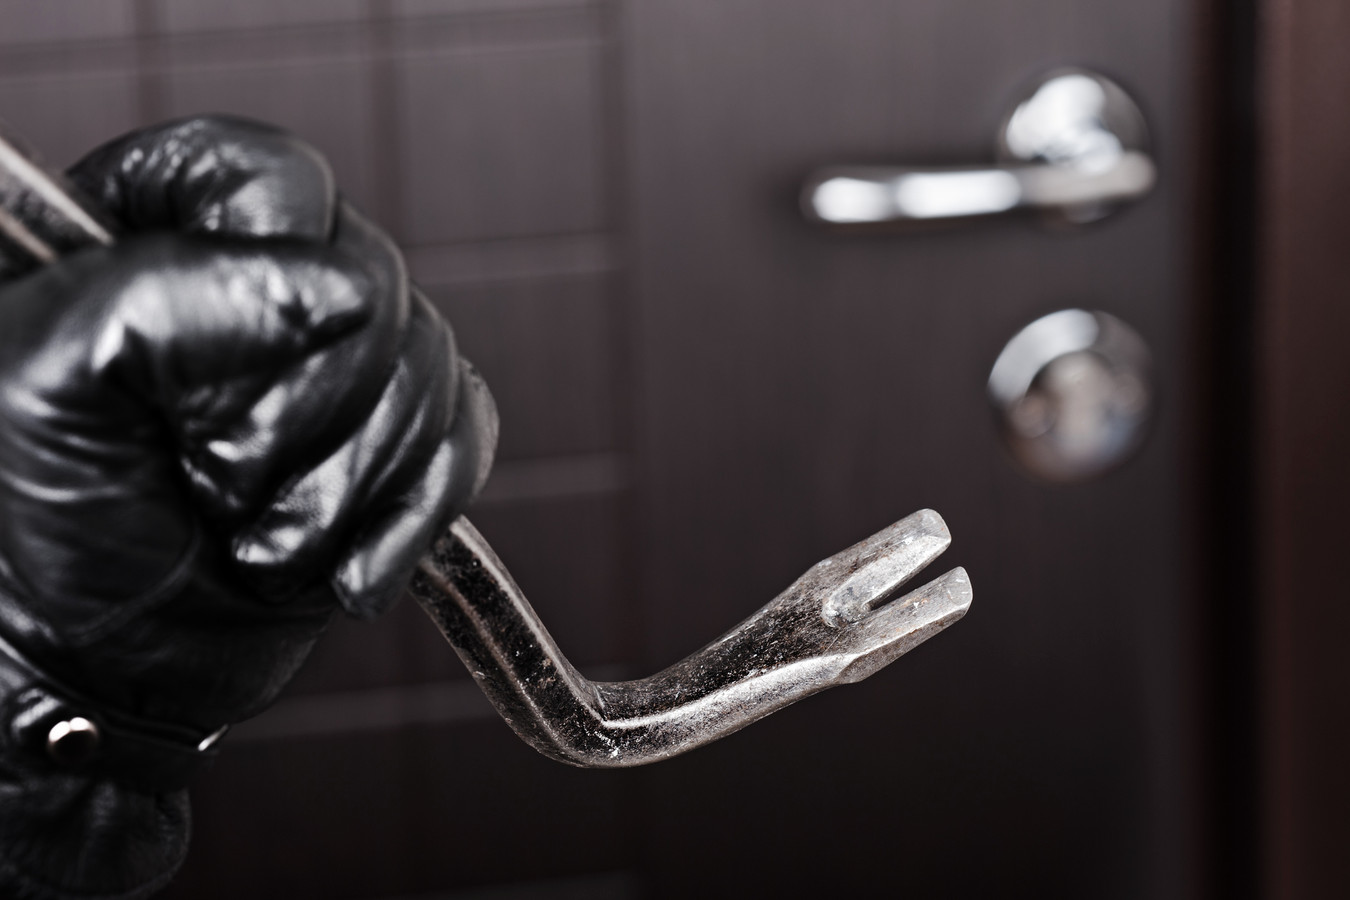 stockadr inbraak inbreker Crime scene - thief or burglar hand in gloves holding metal crowbar break opening home door lock